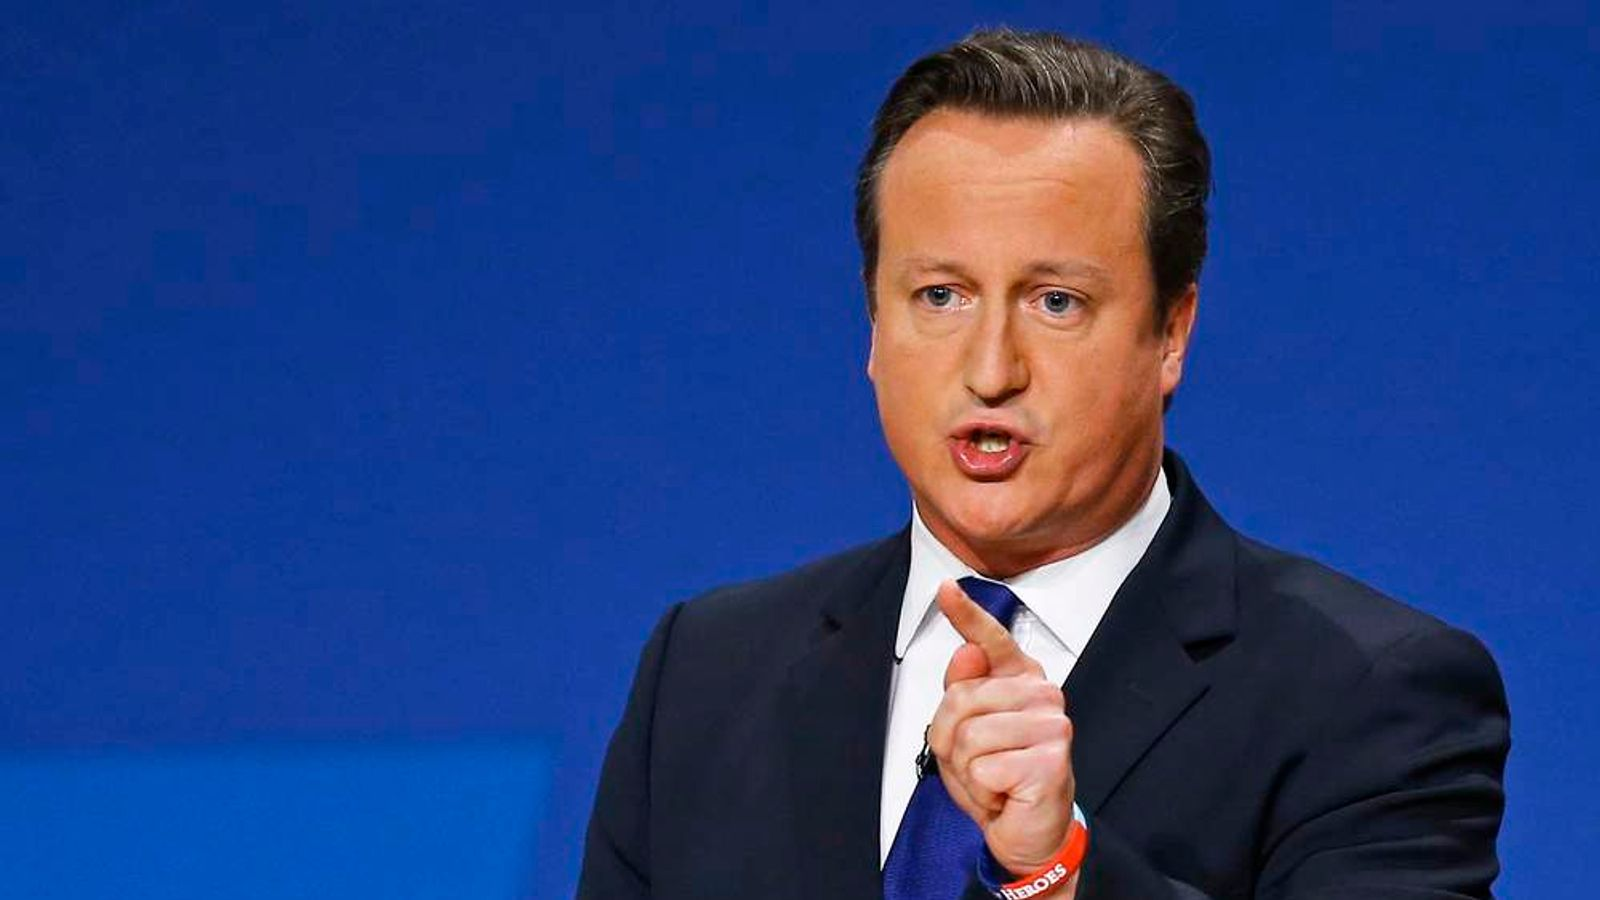 Britain's Prime Minister David Cameron delivers his keynote address to the Conservative Party Conference in Birmingham